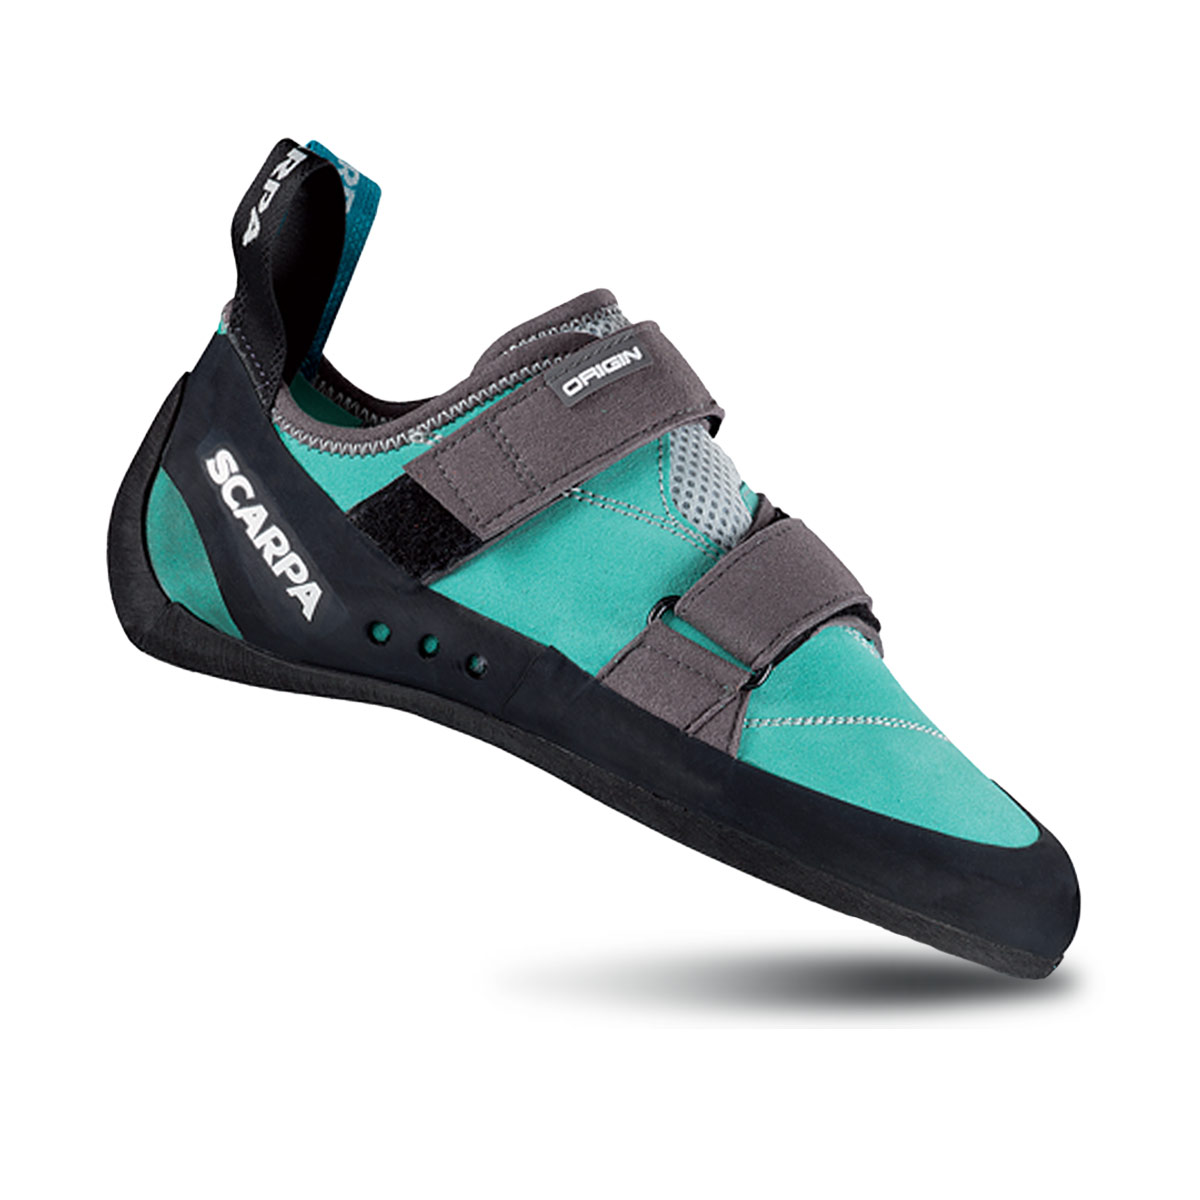 Climbing Shoes Uk Shop